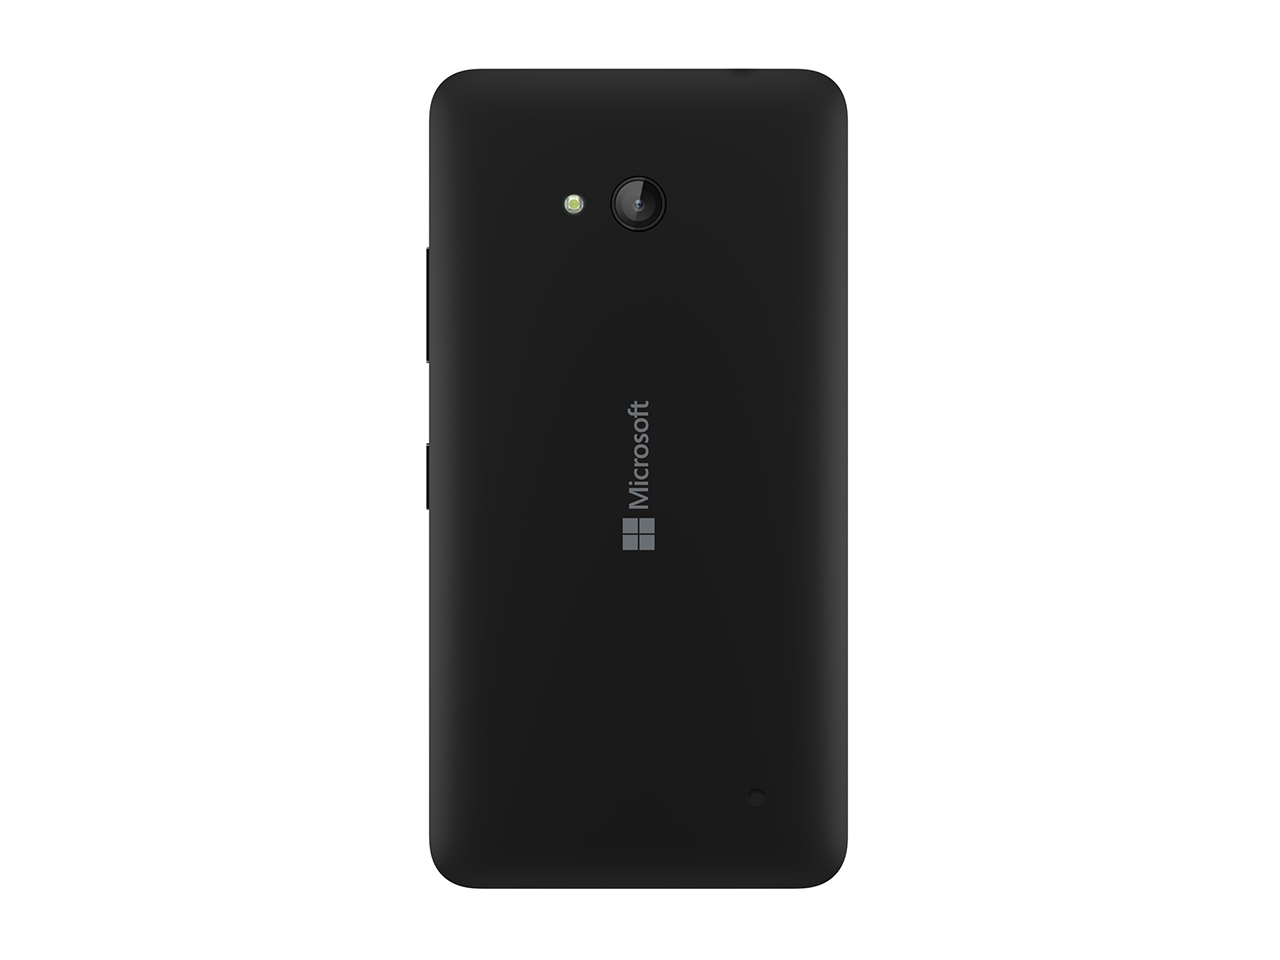 Lumia 540 rear view